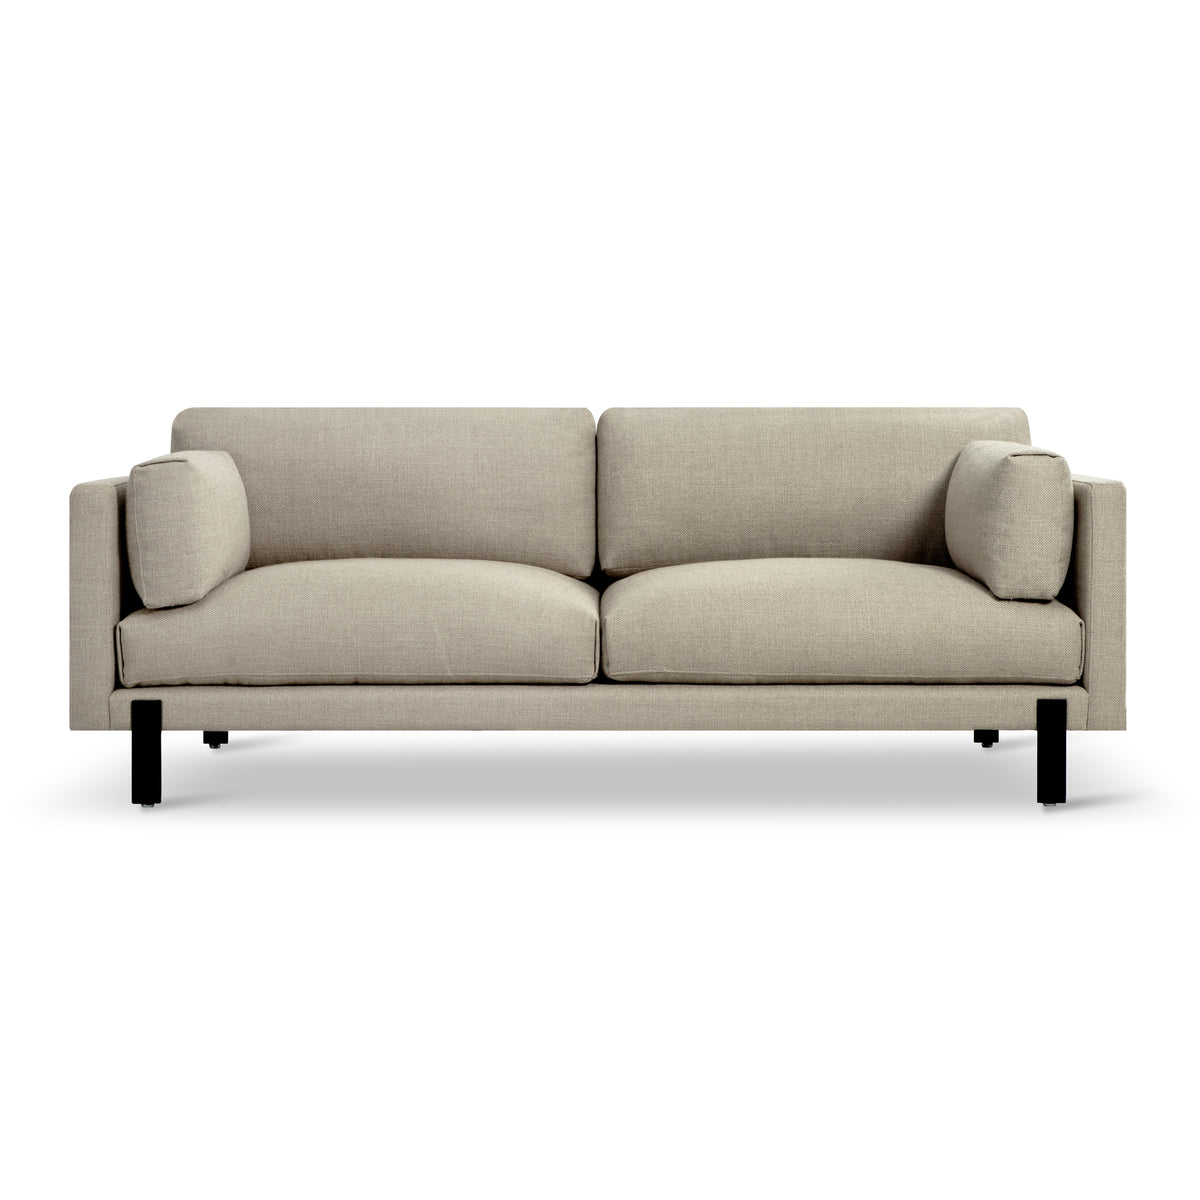 Silverlake Sectional - Right Facing